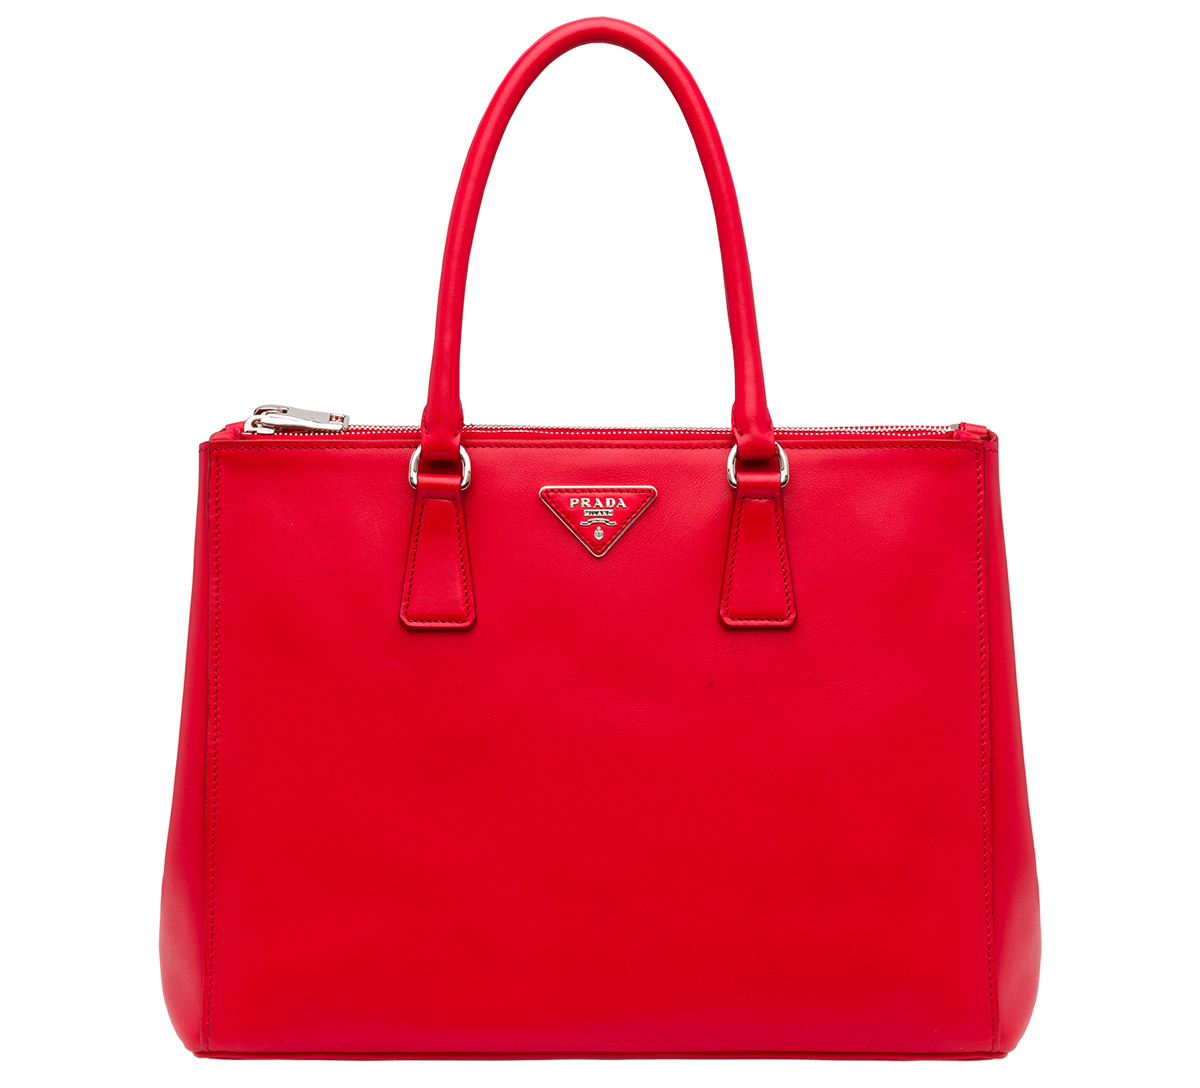 Prada Galleria Bag Laquer Red